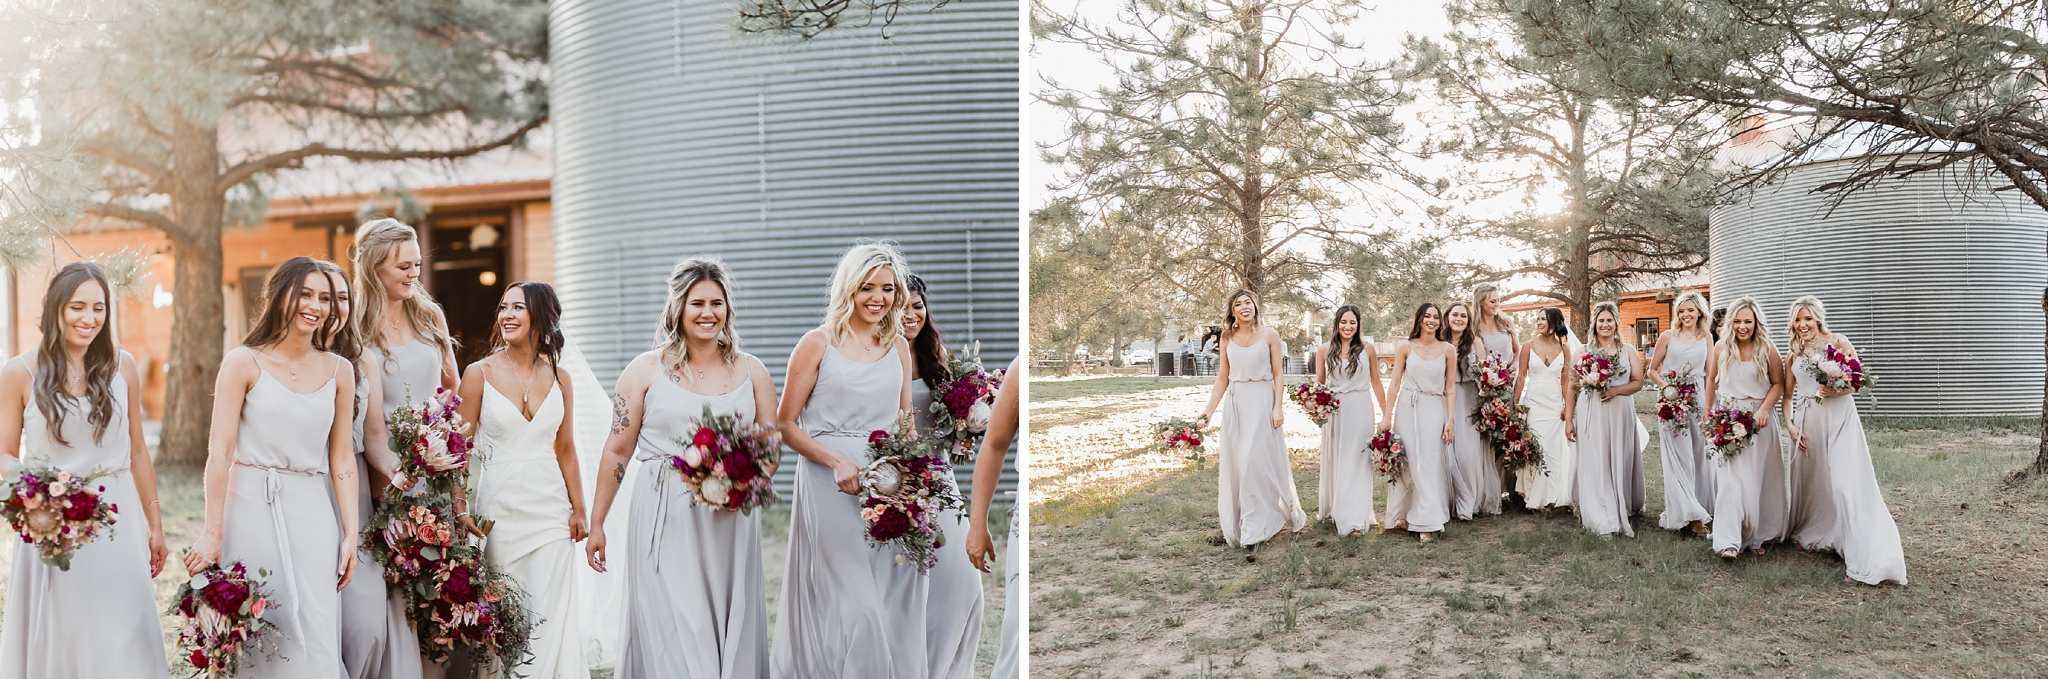 Alicia+lucia+photography+-+albuquerque+wedding+photographer+-+santa+fe+wedding+photography+-+new+mexico+wedding+photographer+-+new+mexico+wedding+-+new+mexico+wedding+-+barn+wedding+-+enchanted+vine+barn+wedding+-+ruidoso+wedding_0120.jpg